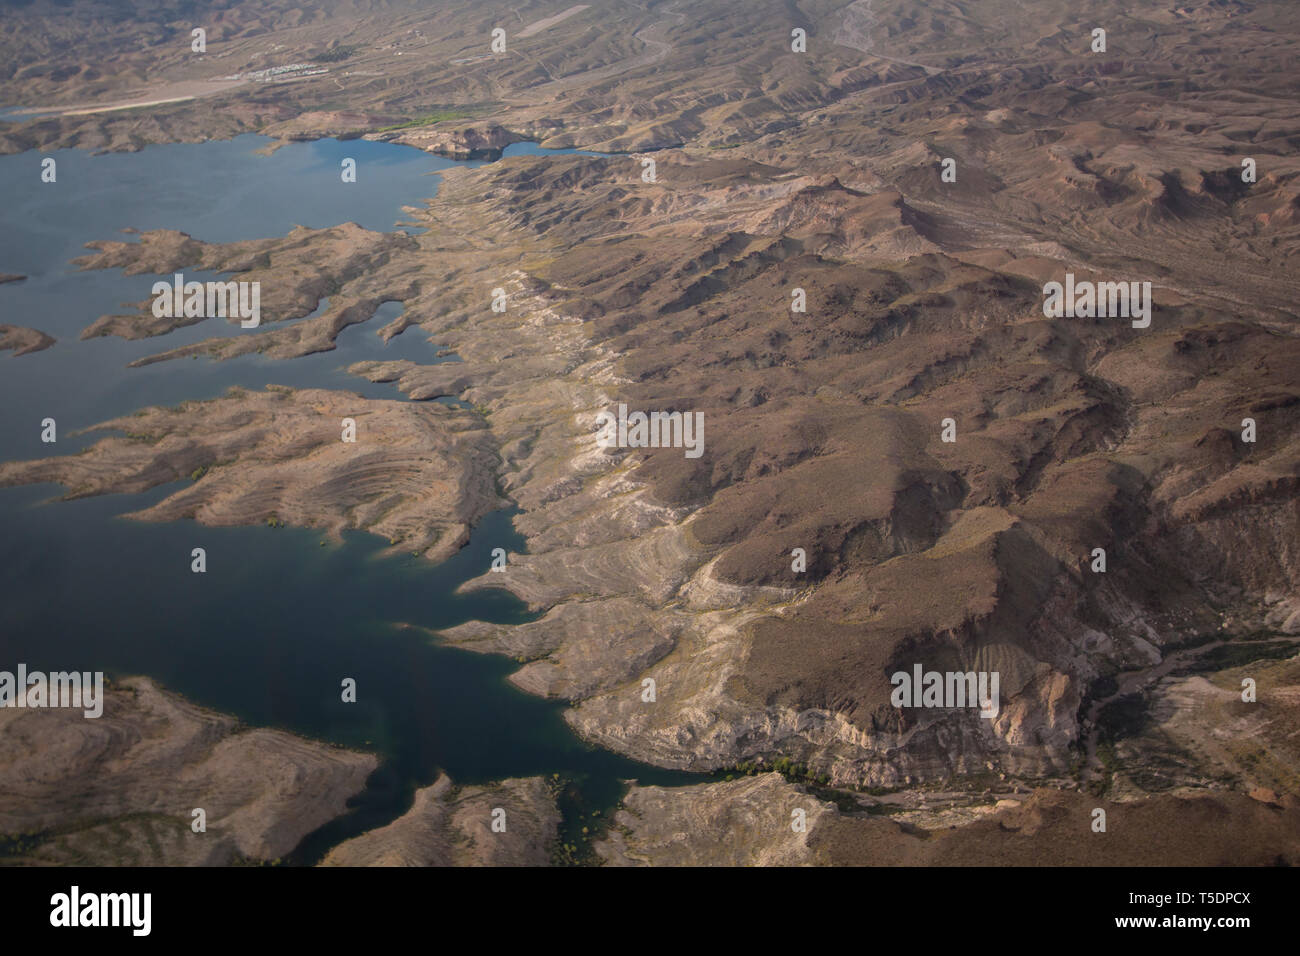 Aerial of Lake Mead National Recreation Area, Arizona Stock Photo